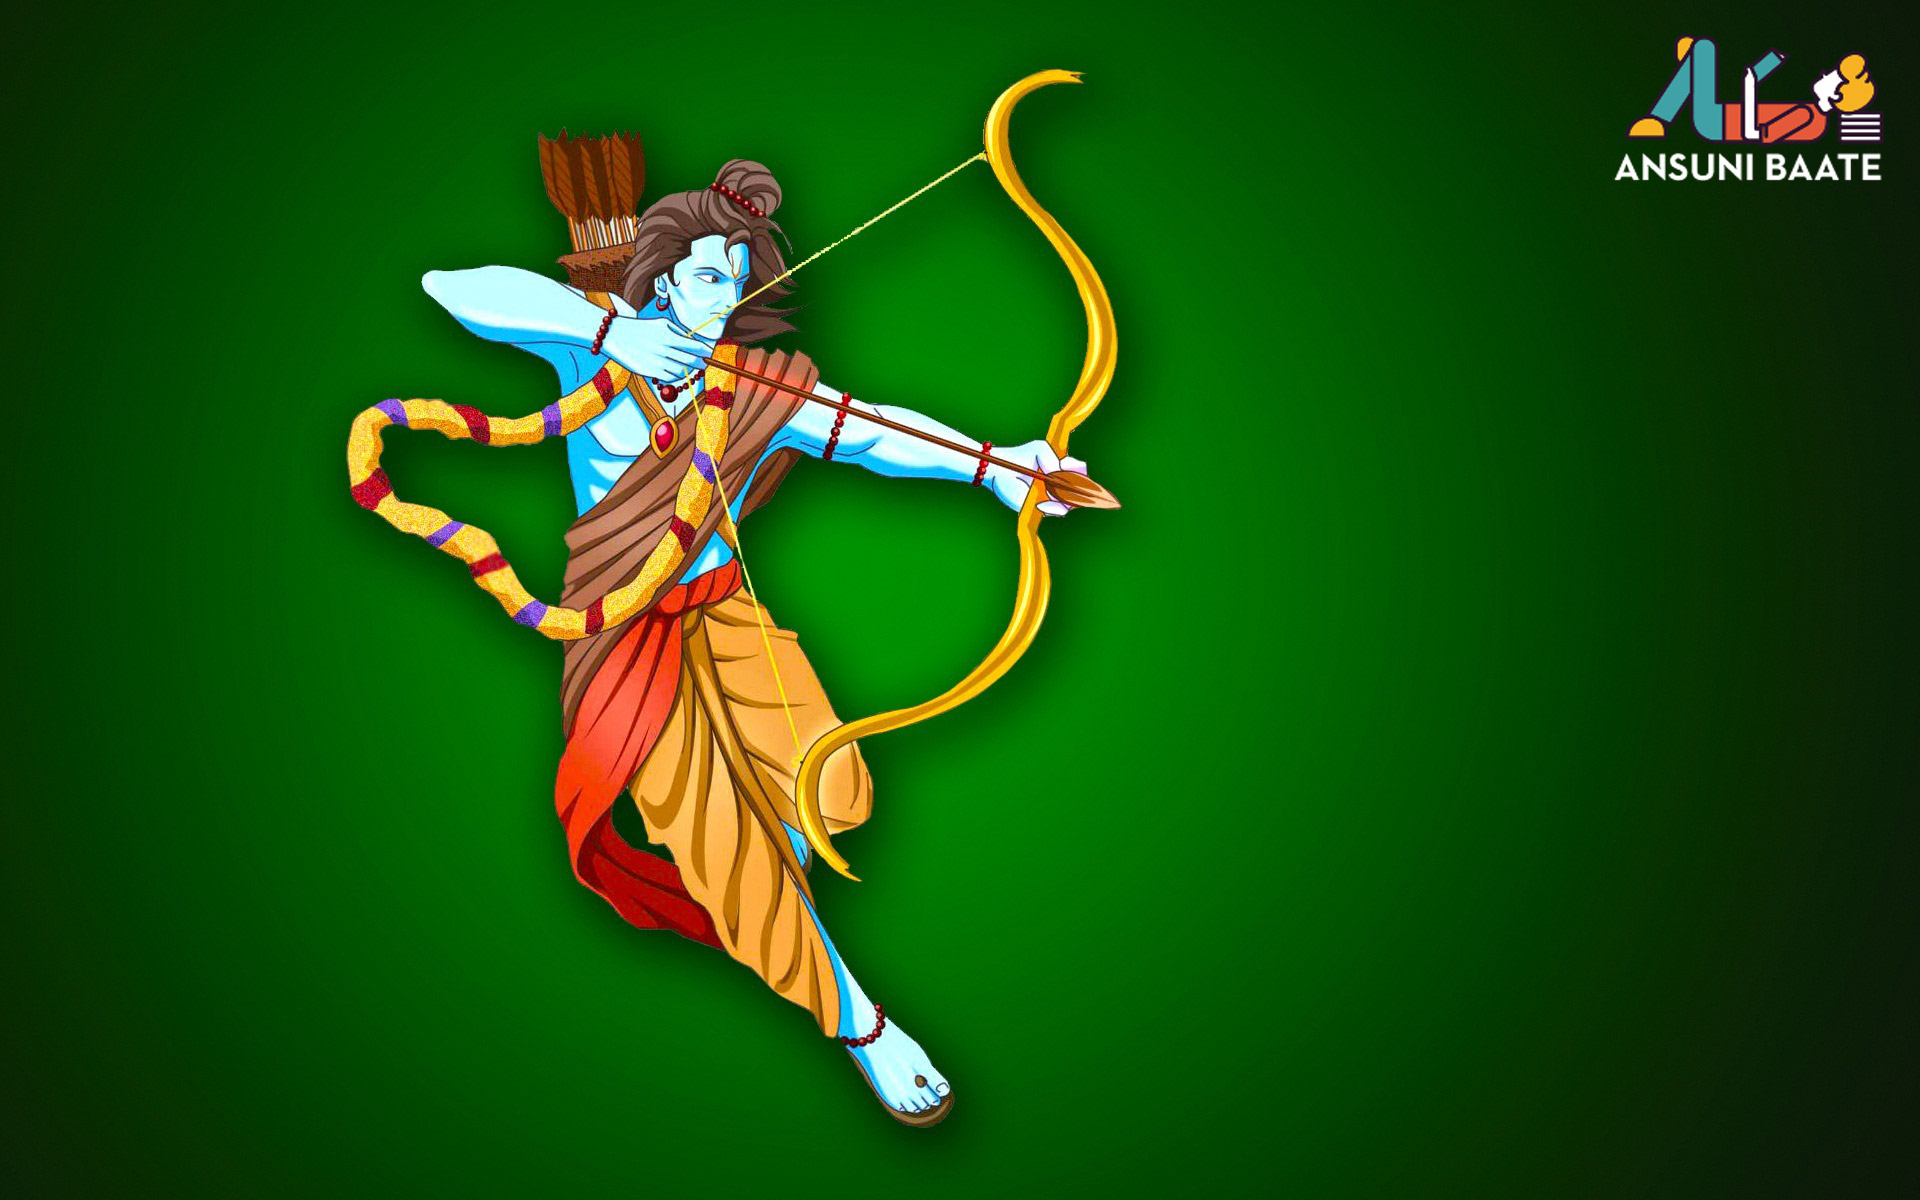 Shri Ram Photos & HD Badminton Images Gallery Free Download Jai Shri Ram Name Images Picture Download श्री राम नाम इमेज डाउनलोड